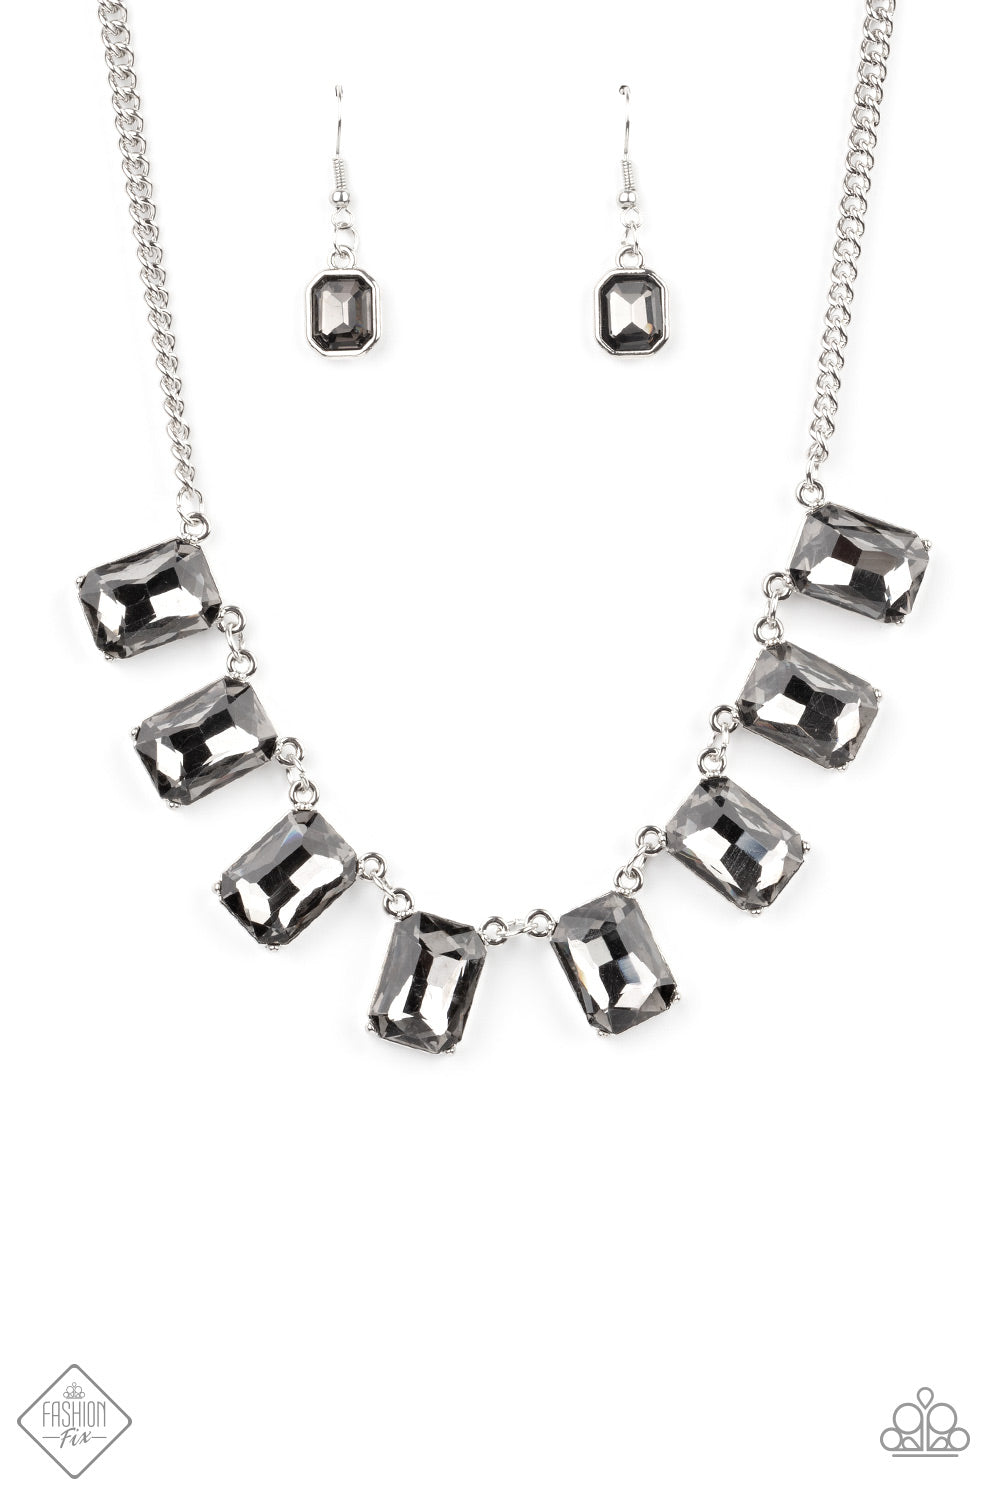 Paparazzi Accessories - After Party Access - Silver Necklace